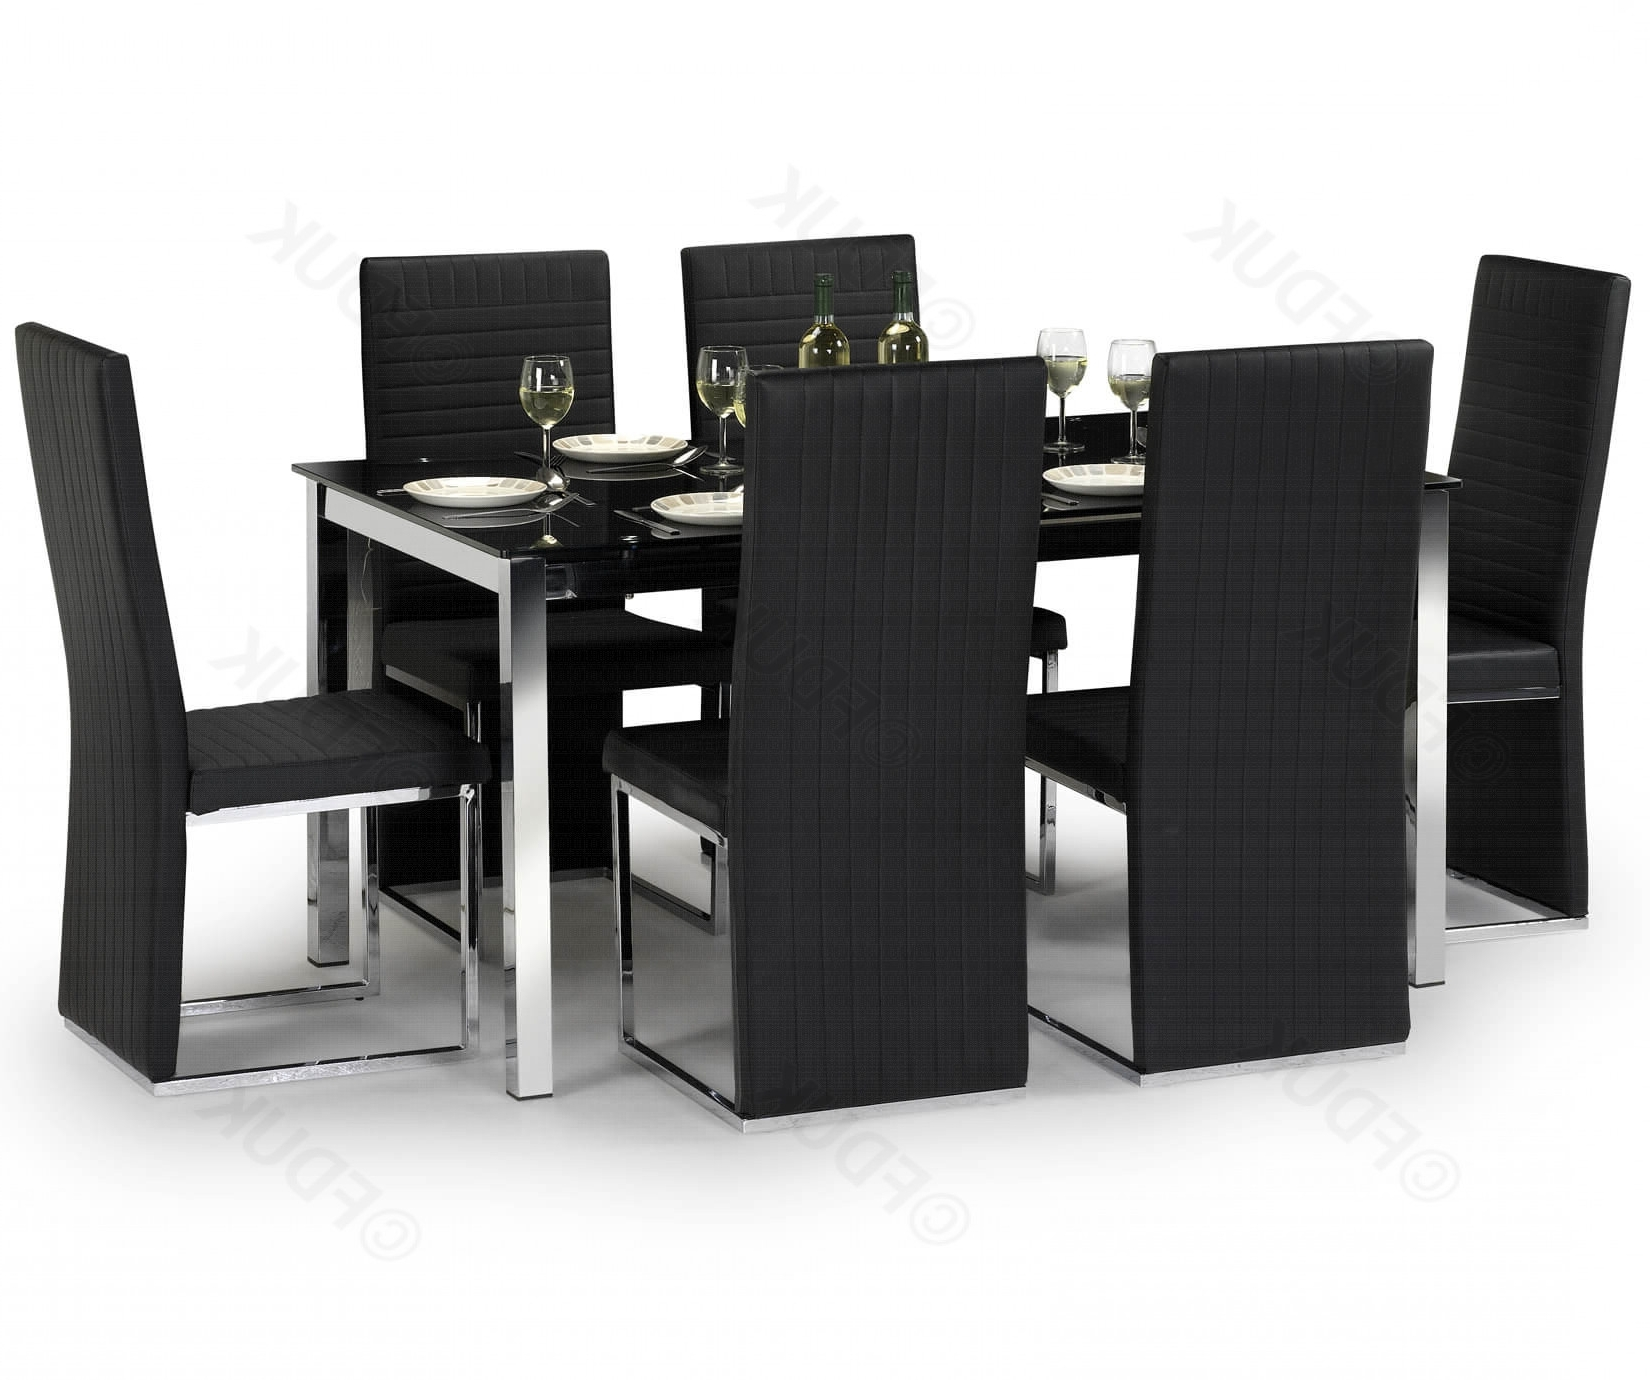 Tempo Black Glass Dining Table Wiht 6 Chairs With Regard To Trendy Black Glass Dining Tables 6 Chairs (View 8 of 25)